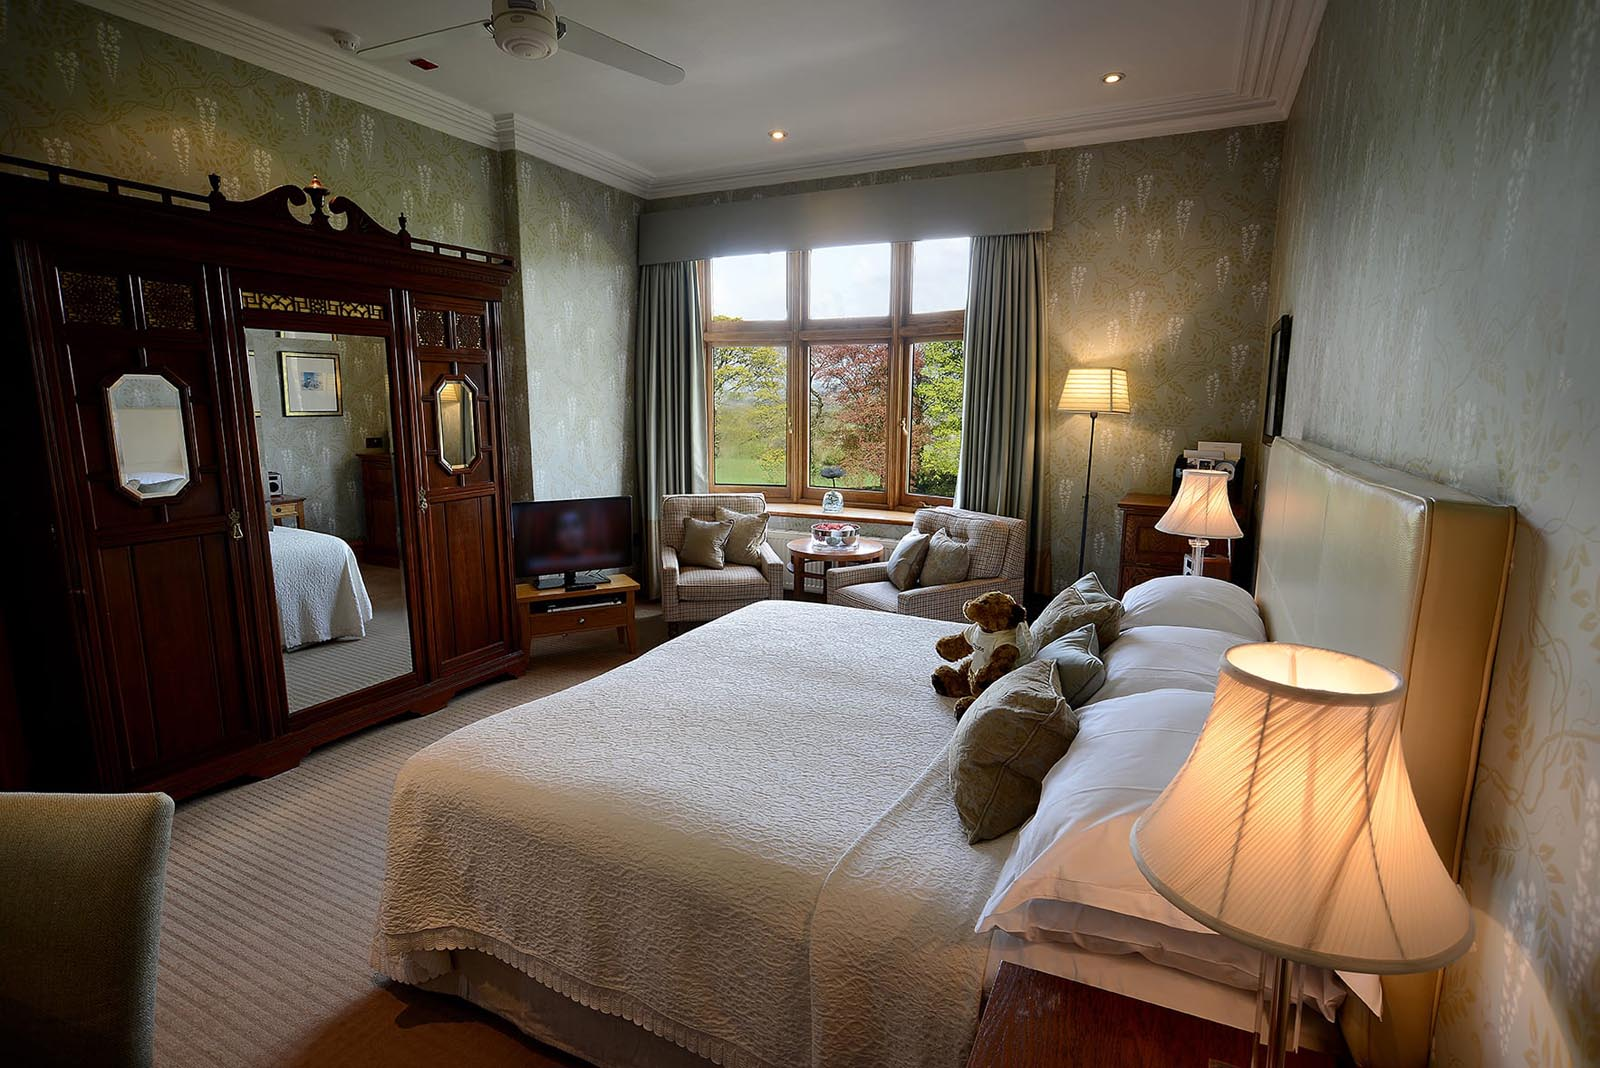 Large bed, seating area and large window